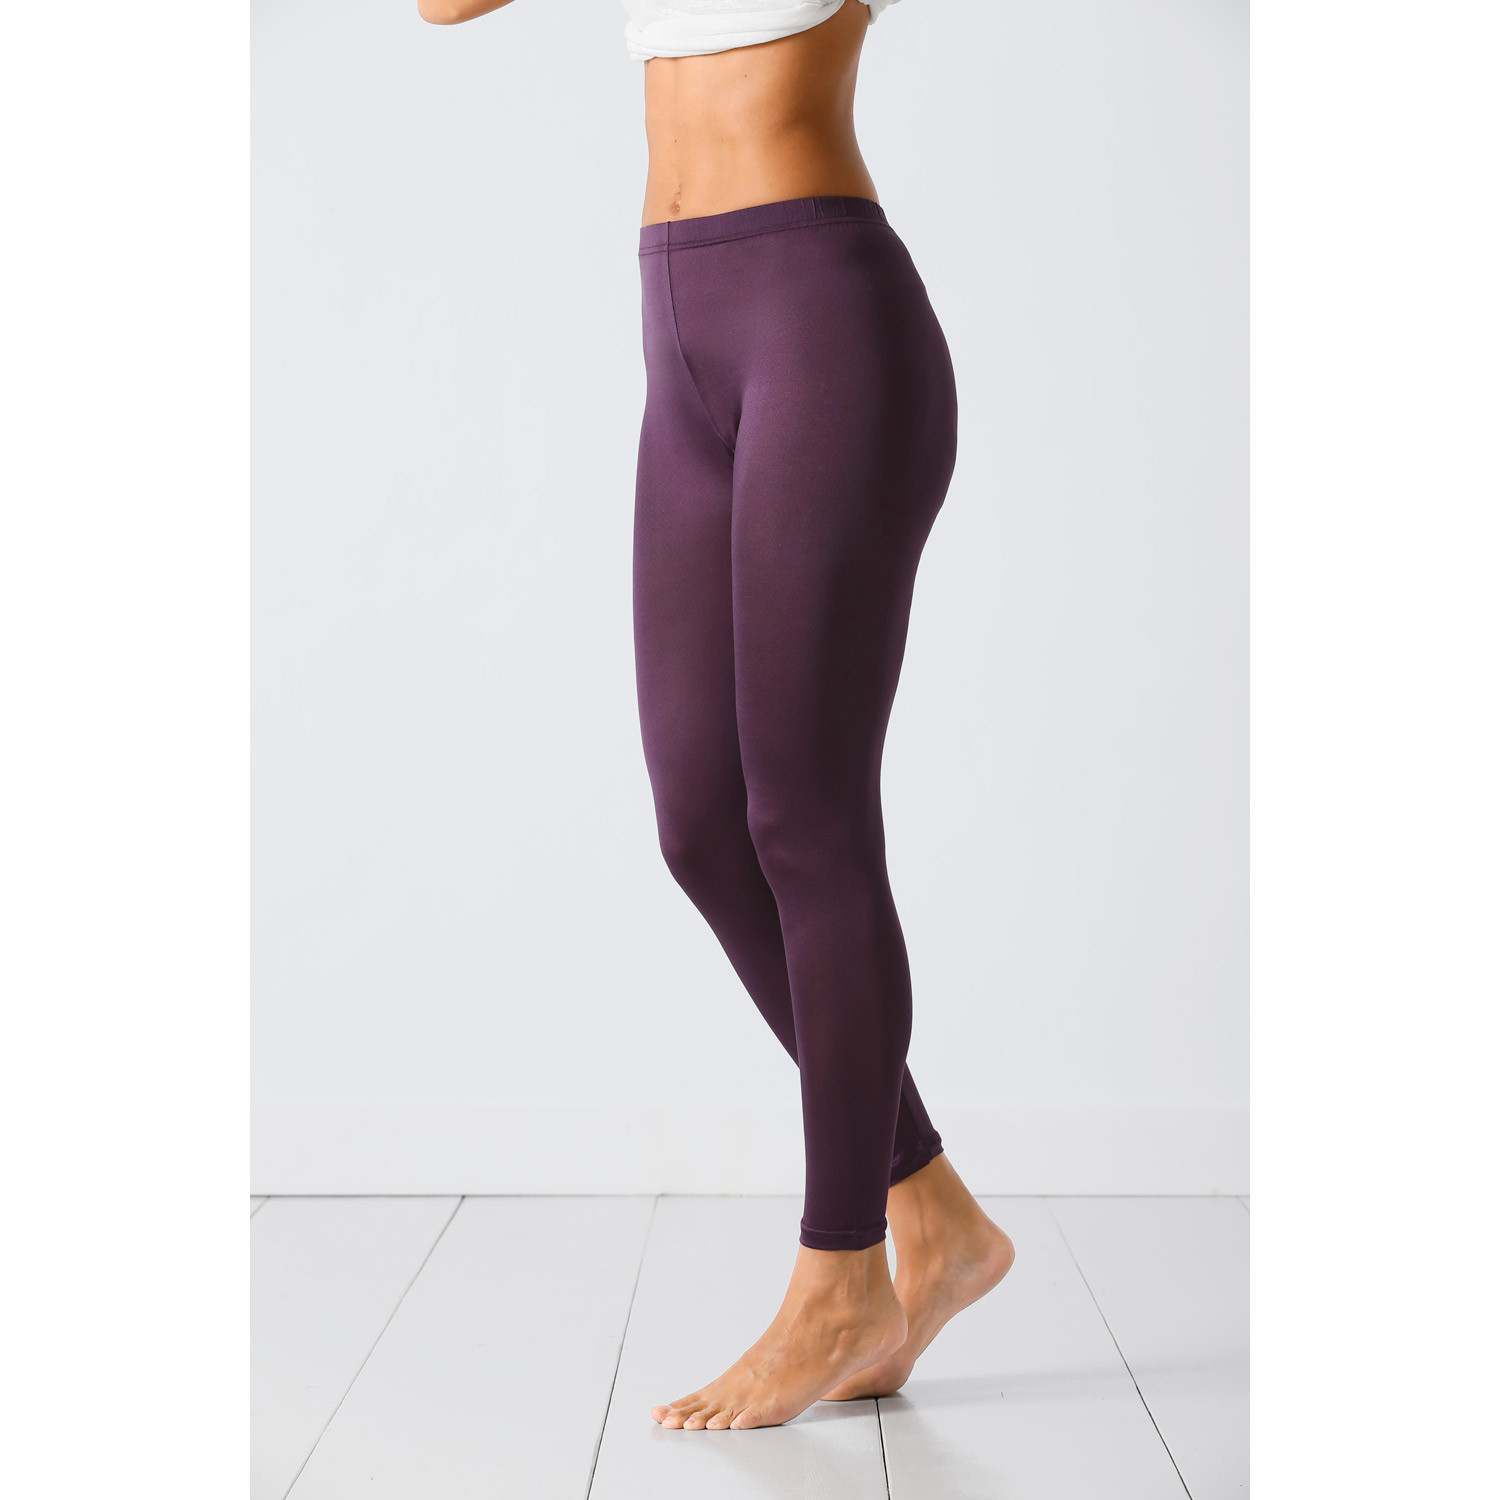 Seiden-Leggings, plum